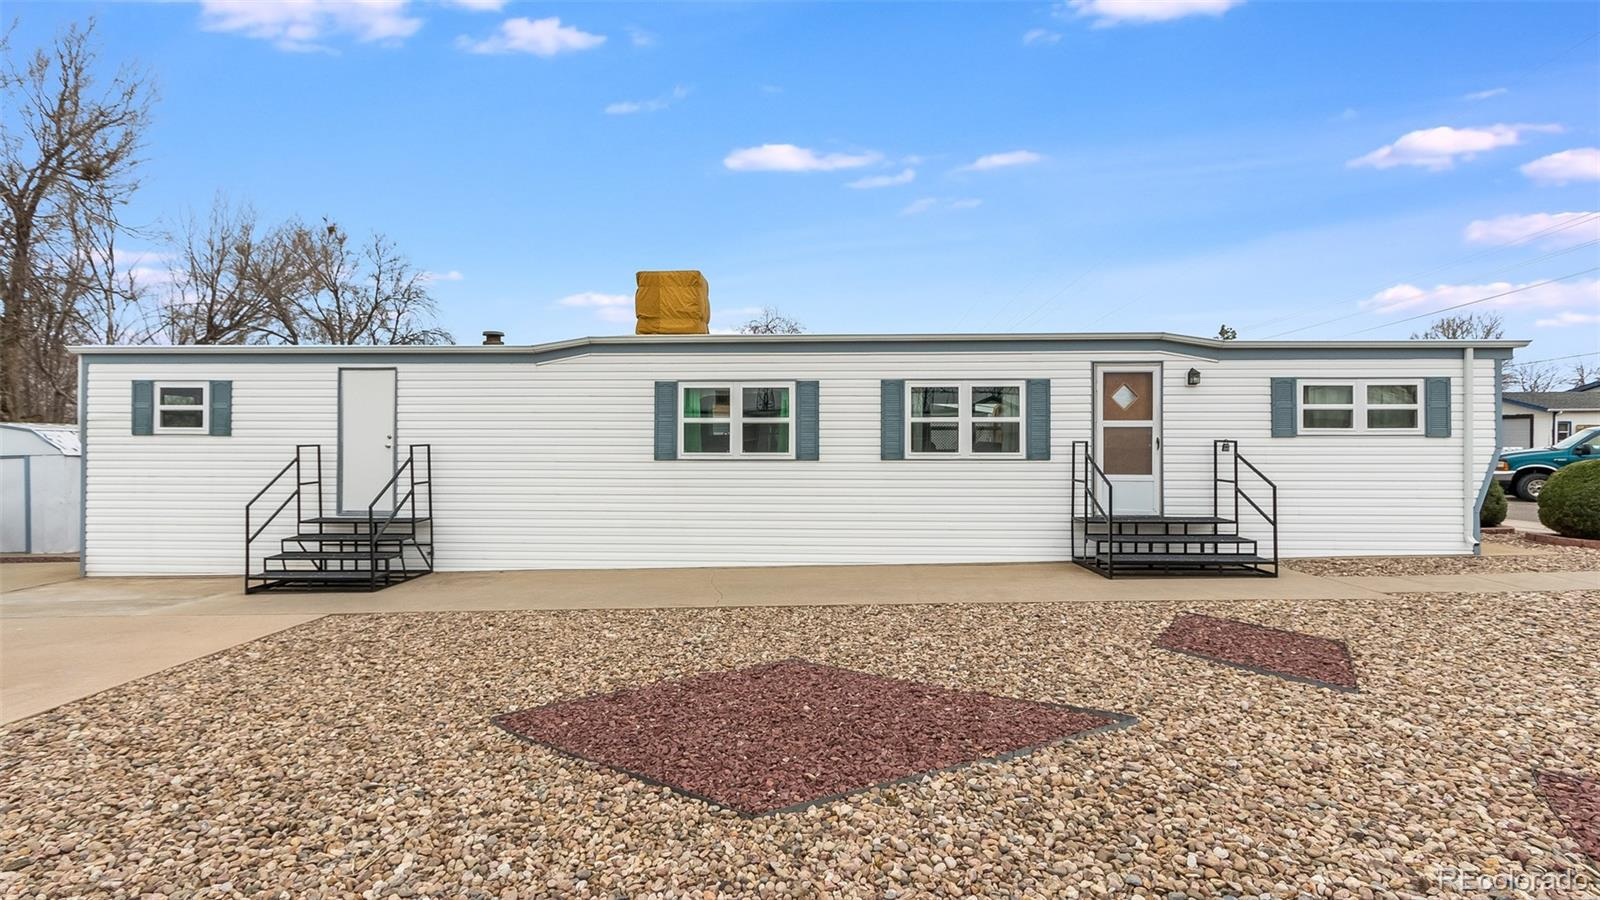 Mobile Homes for Rent Near Me Under $700, mobile homes for rent under $300 a month, mobile homes for rent under $400 a month near me, mobile homes for rent under $400 a month, mobile homes for rent under $500 near me, mobile homes for rent under $600 near me, mobile homes for rent under $700 near me, mobile homes for rent under $700, mobile homes for rent under $800 near me, mobile homes for rent under 1000, mobile homes for rent under,